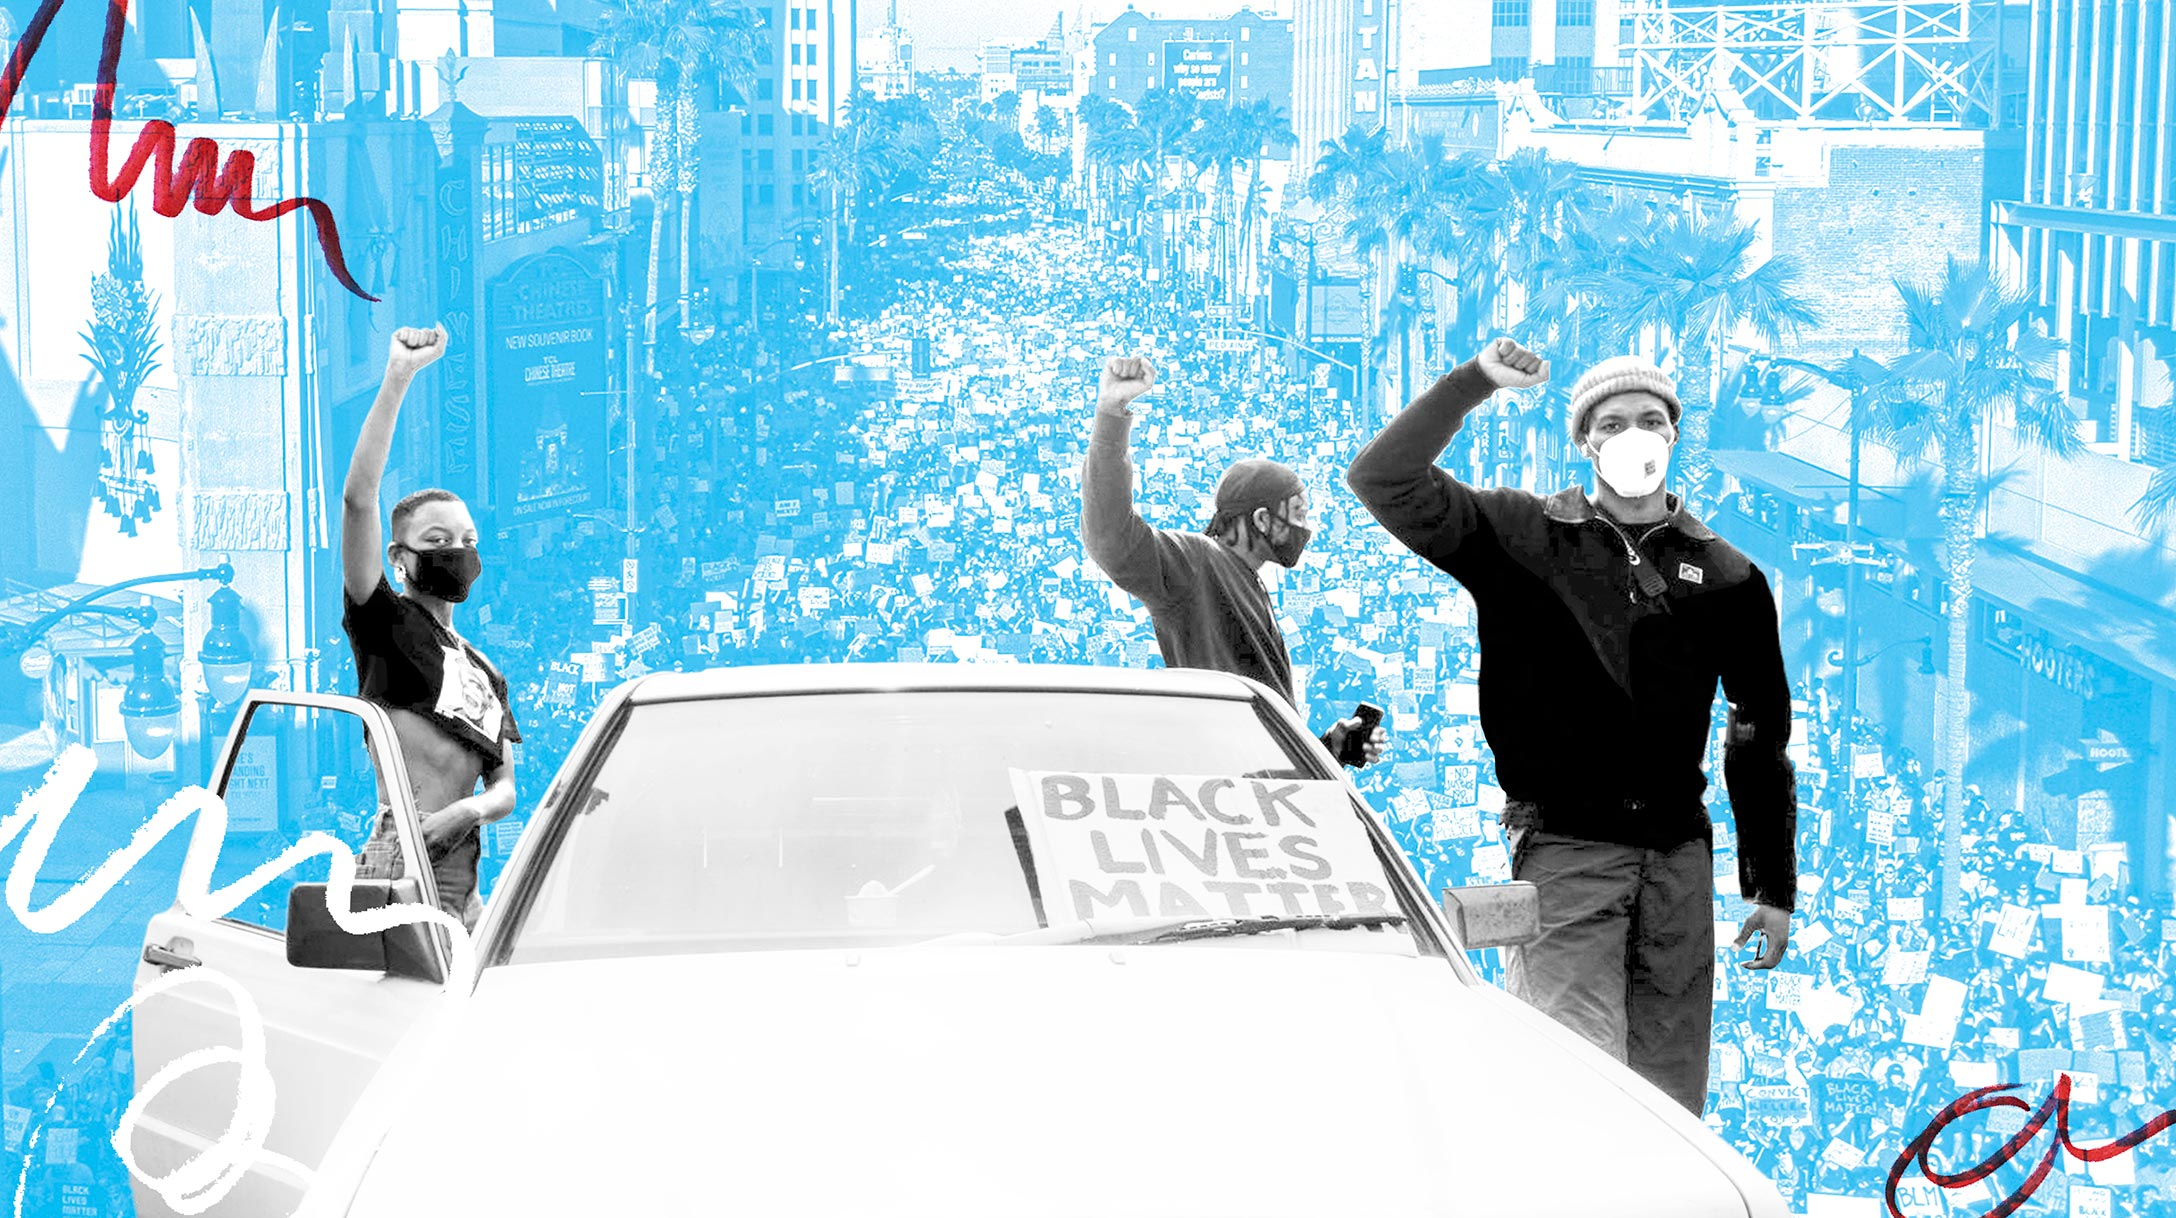 Protestors stand by a car with arms raised and holding a BLM sign.